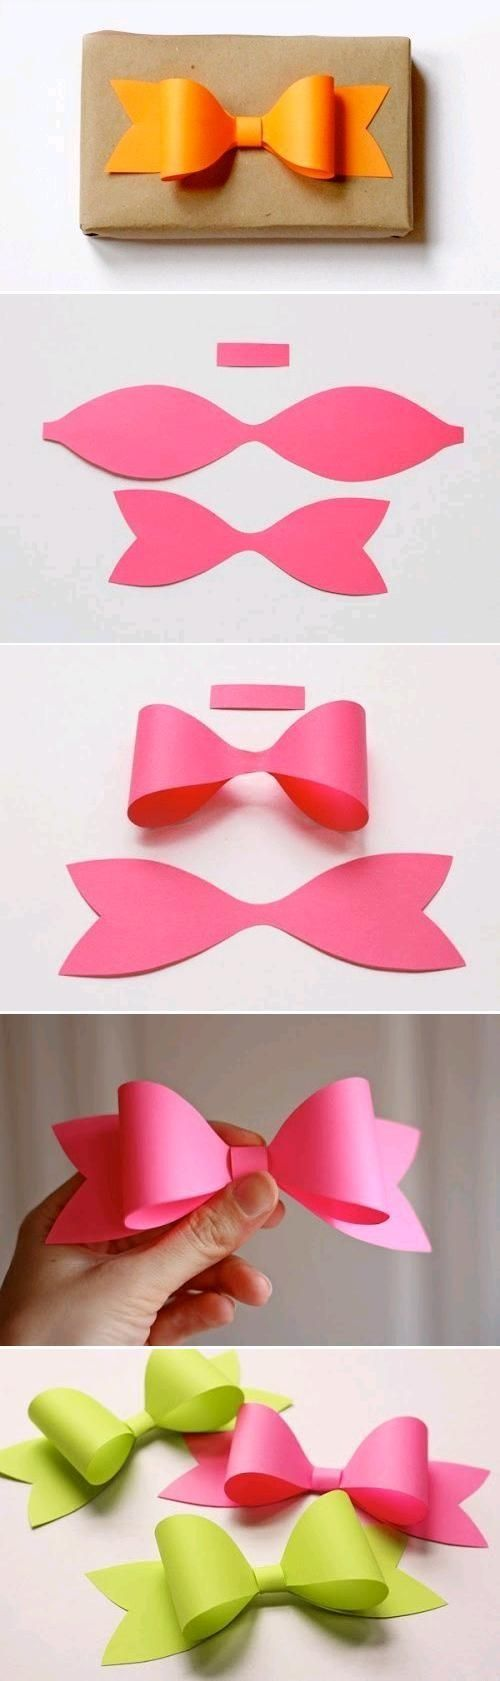 photo tutorial ... how to make a paper bow ... great idea for packages, hair ornament or handmade card ...